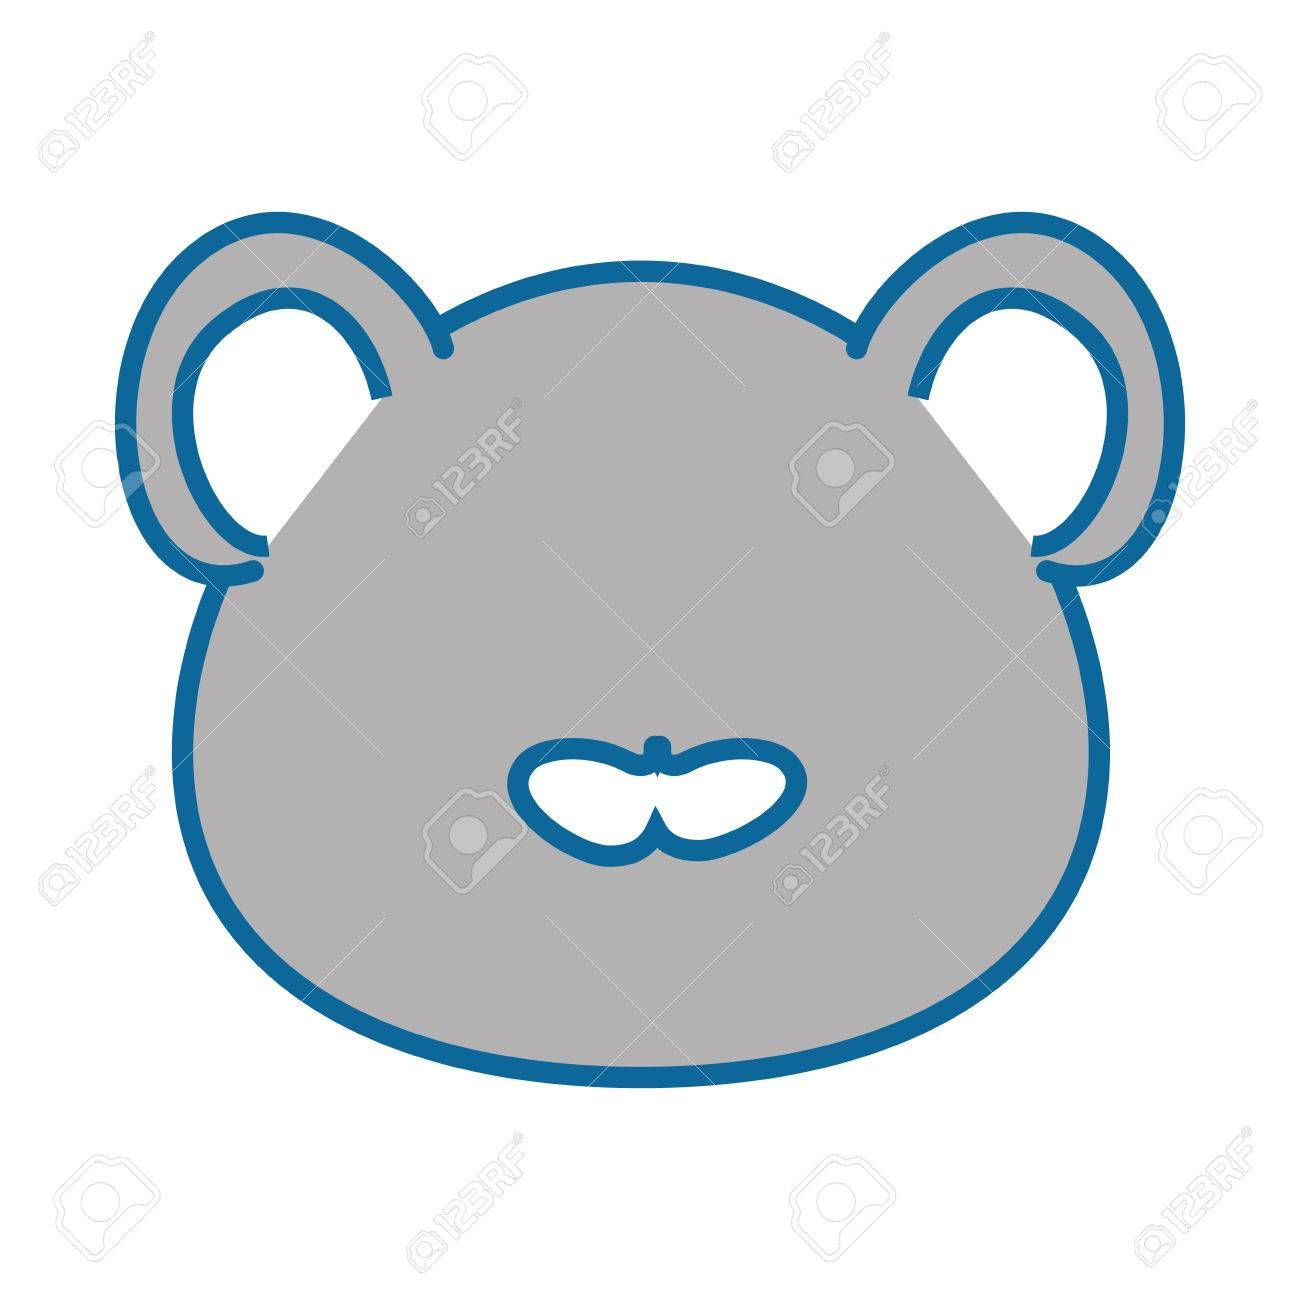 Isolated Cute Mouse Face Icon Vector Illustration Graphic Design Spon Mouse Face Isolated Cute Ico Presentation Template Free Cute Mouse Face Icon